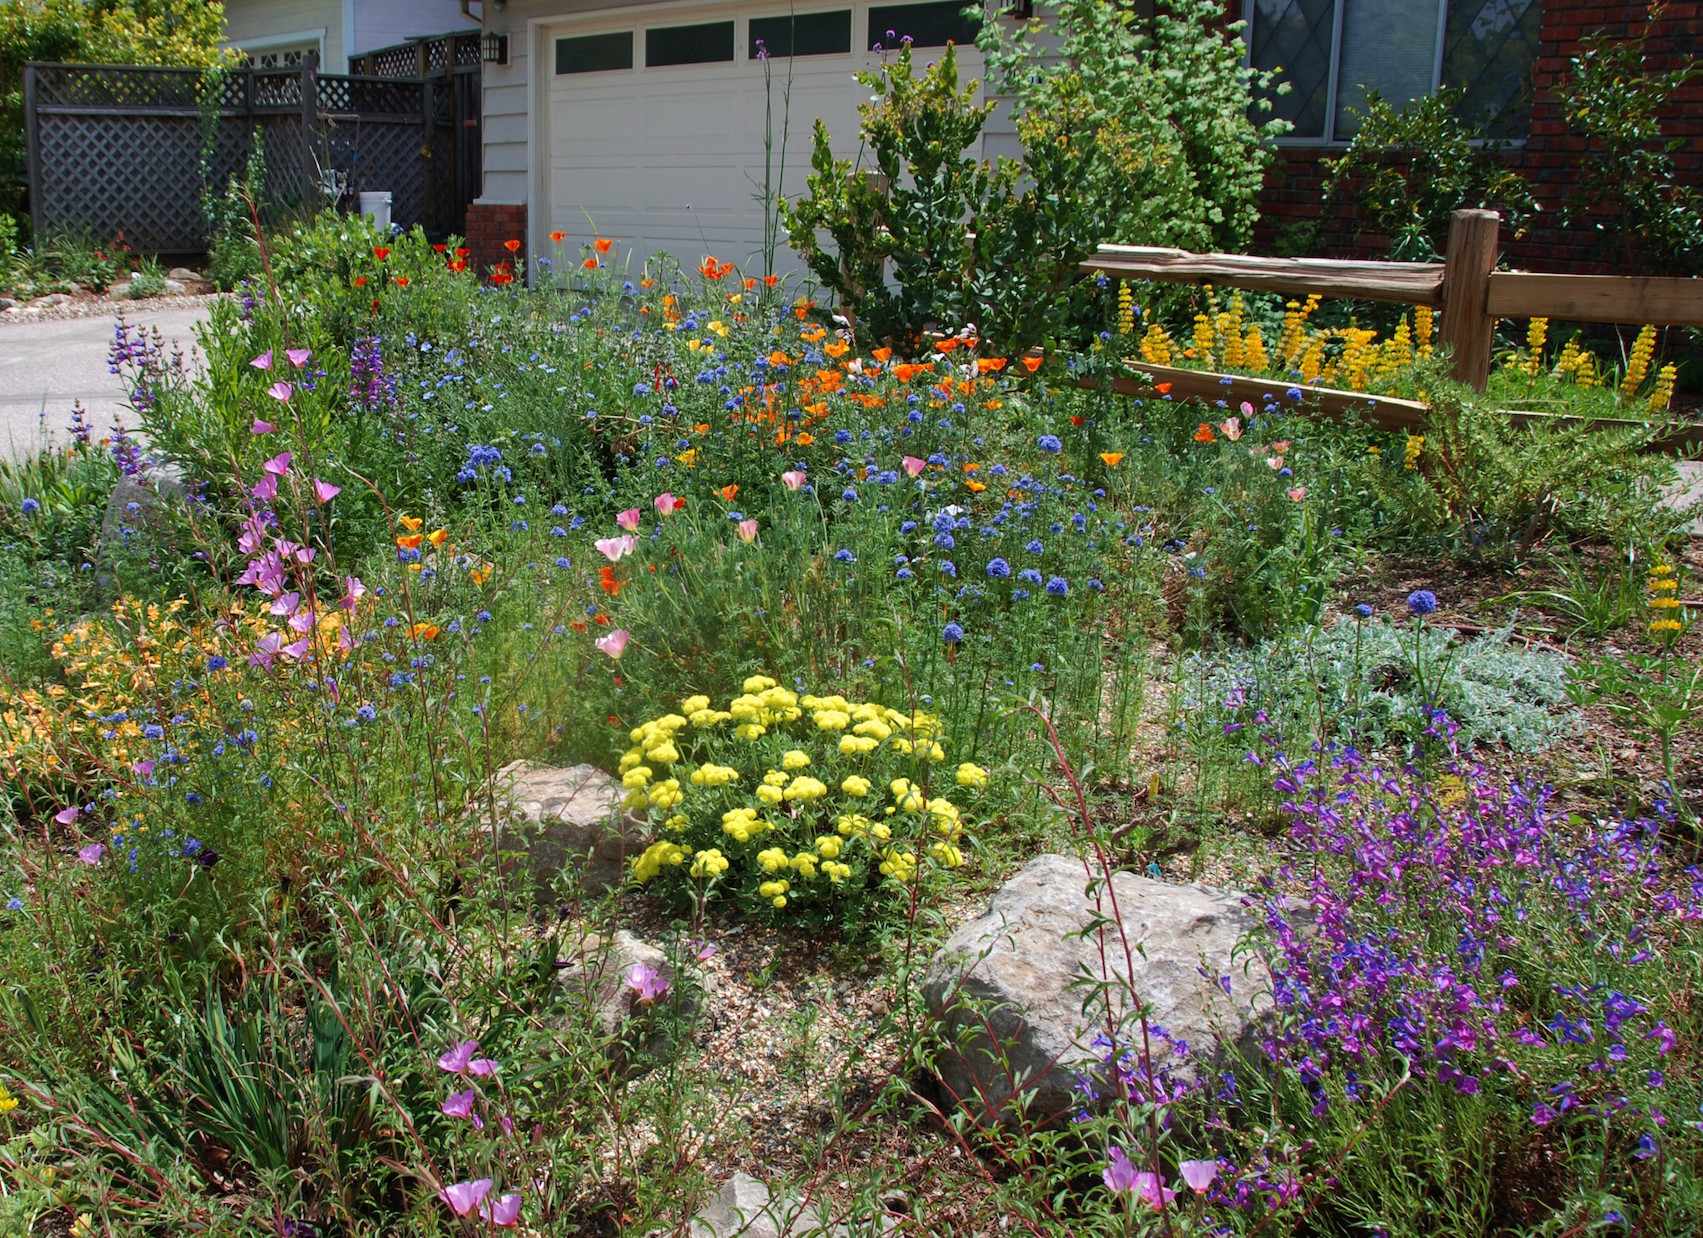 Superbe Transforming Your Yard Into A Native Plant Oasis Need Not Be A Daunting  Task! Hereu0027s An Example Of A Small Front Yardu0027s Native Landscaping By Pete  Veilleux ...